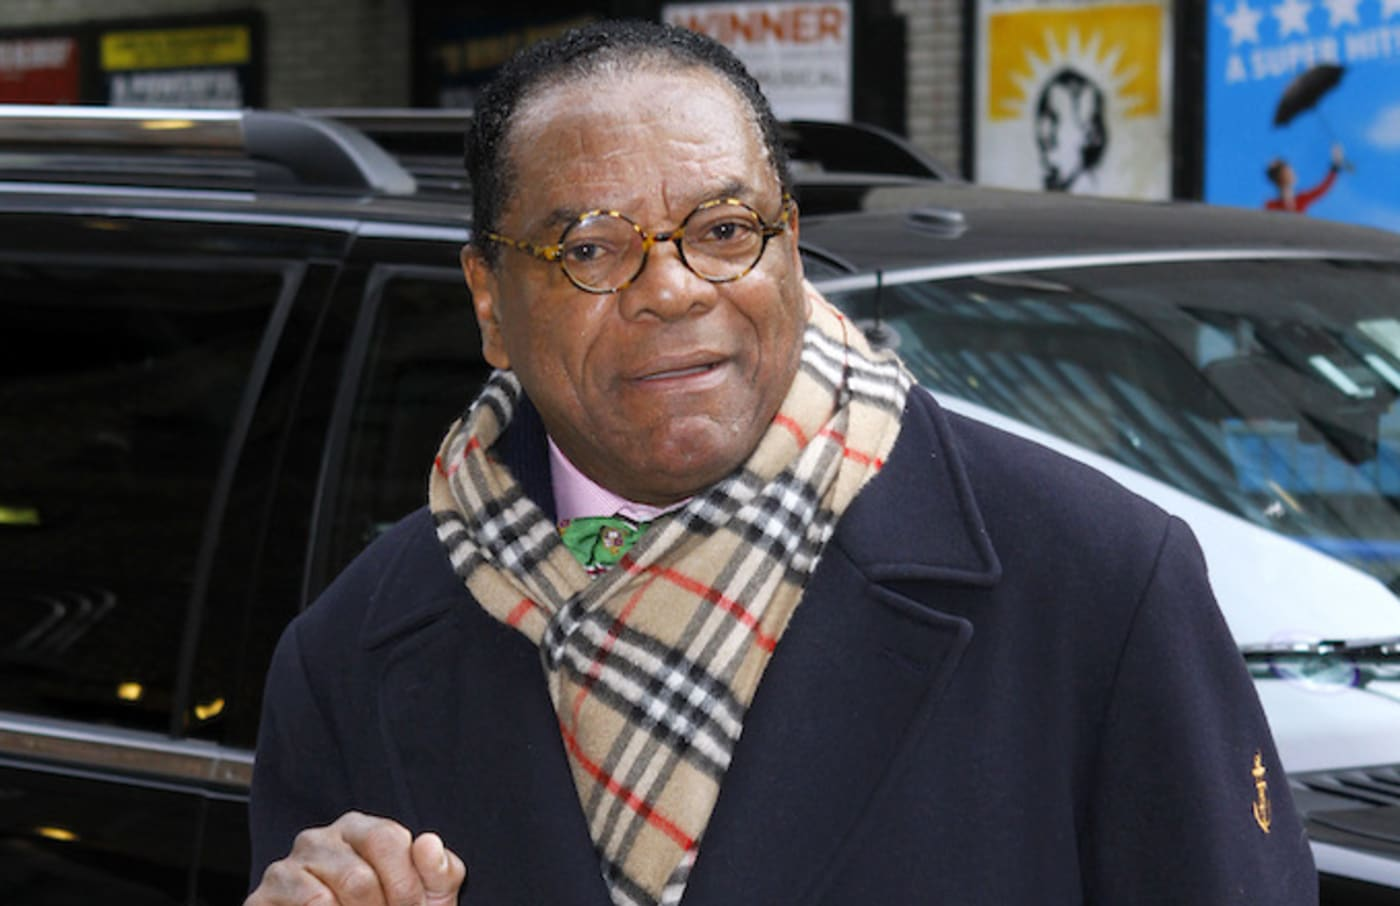 john witherspoon 77